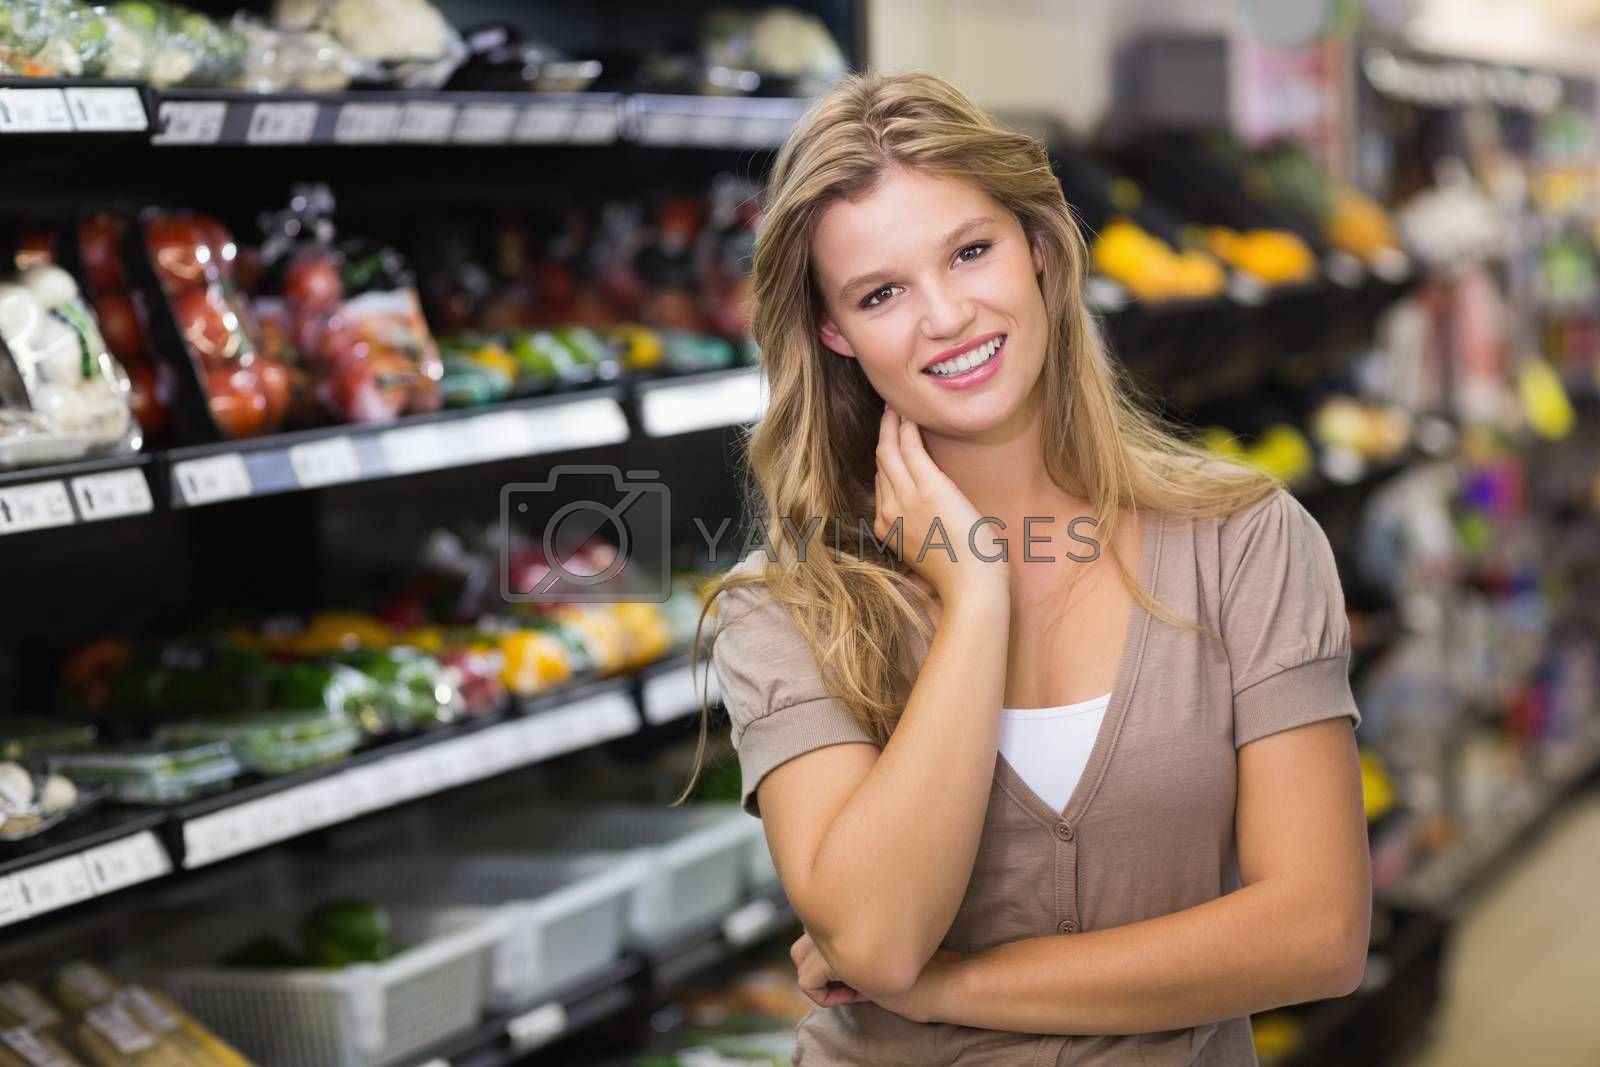 Royalty free image of Portrait of a pretty blonde woman with hand on face  by Wavebreakmedia